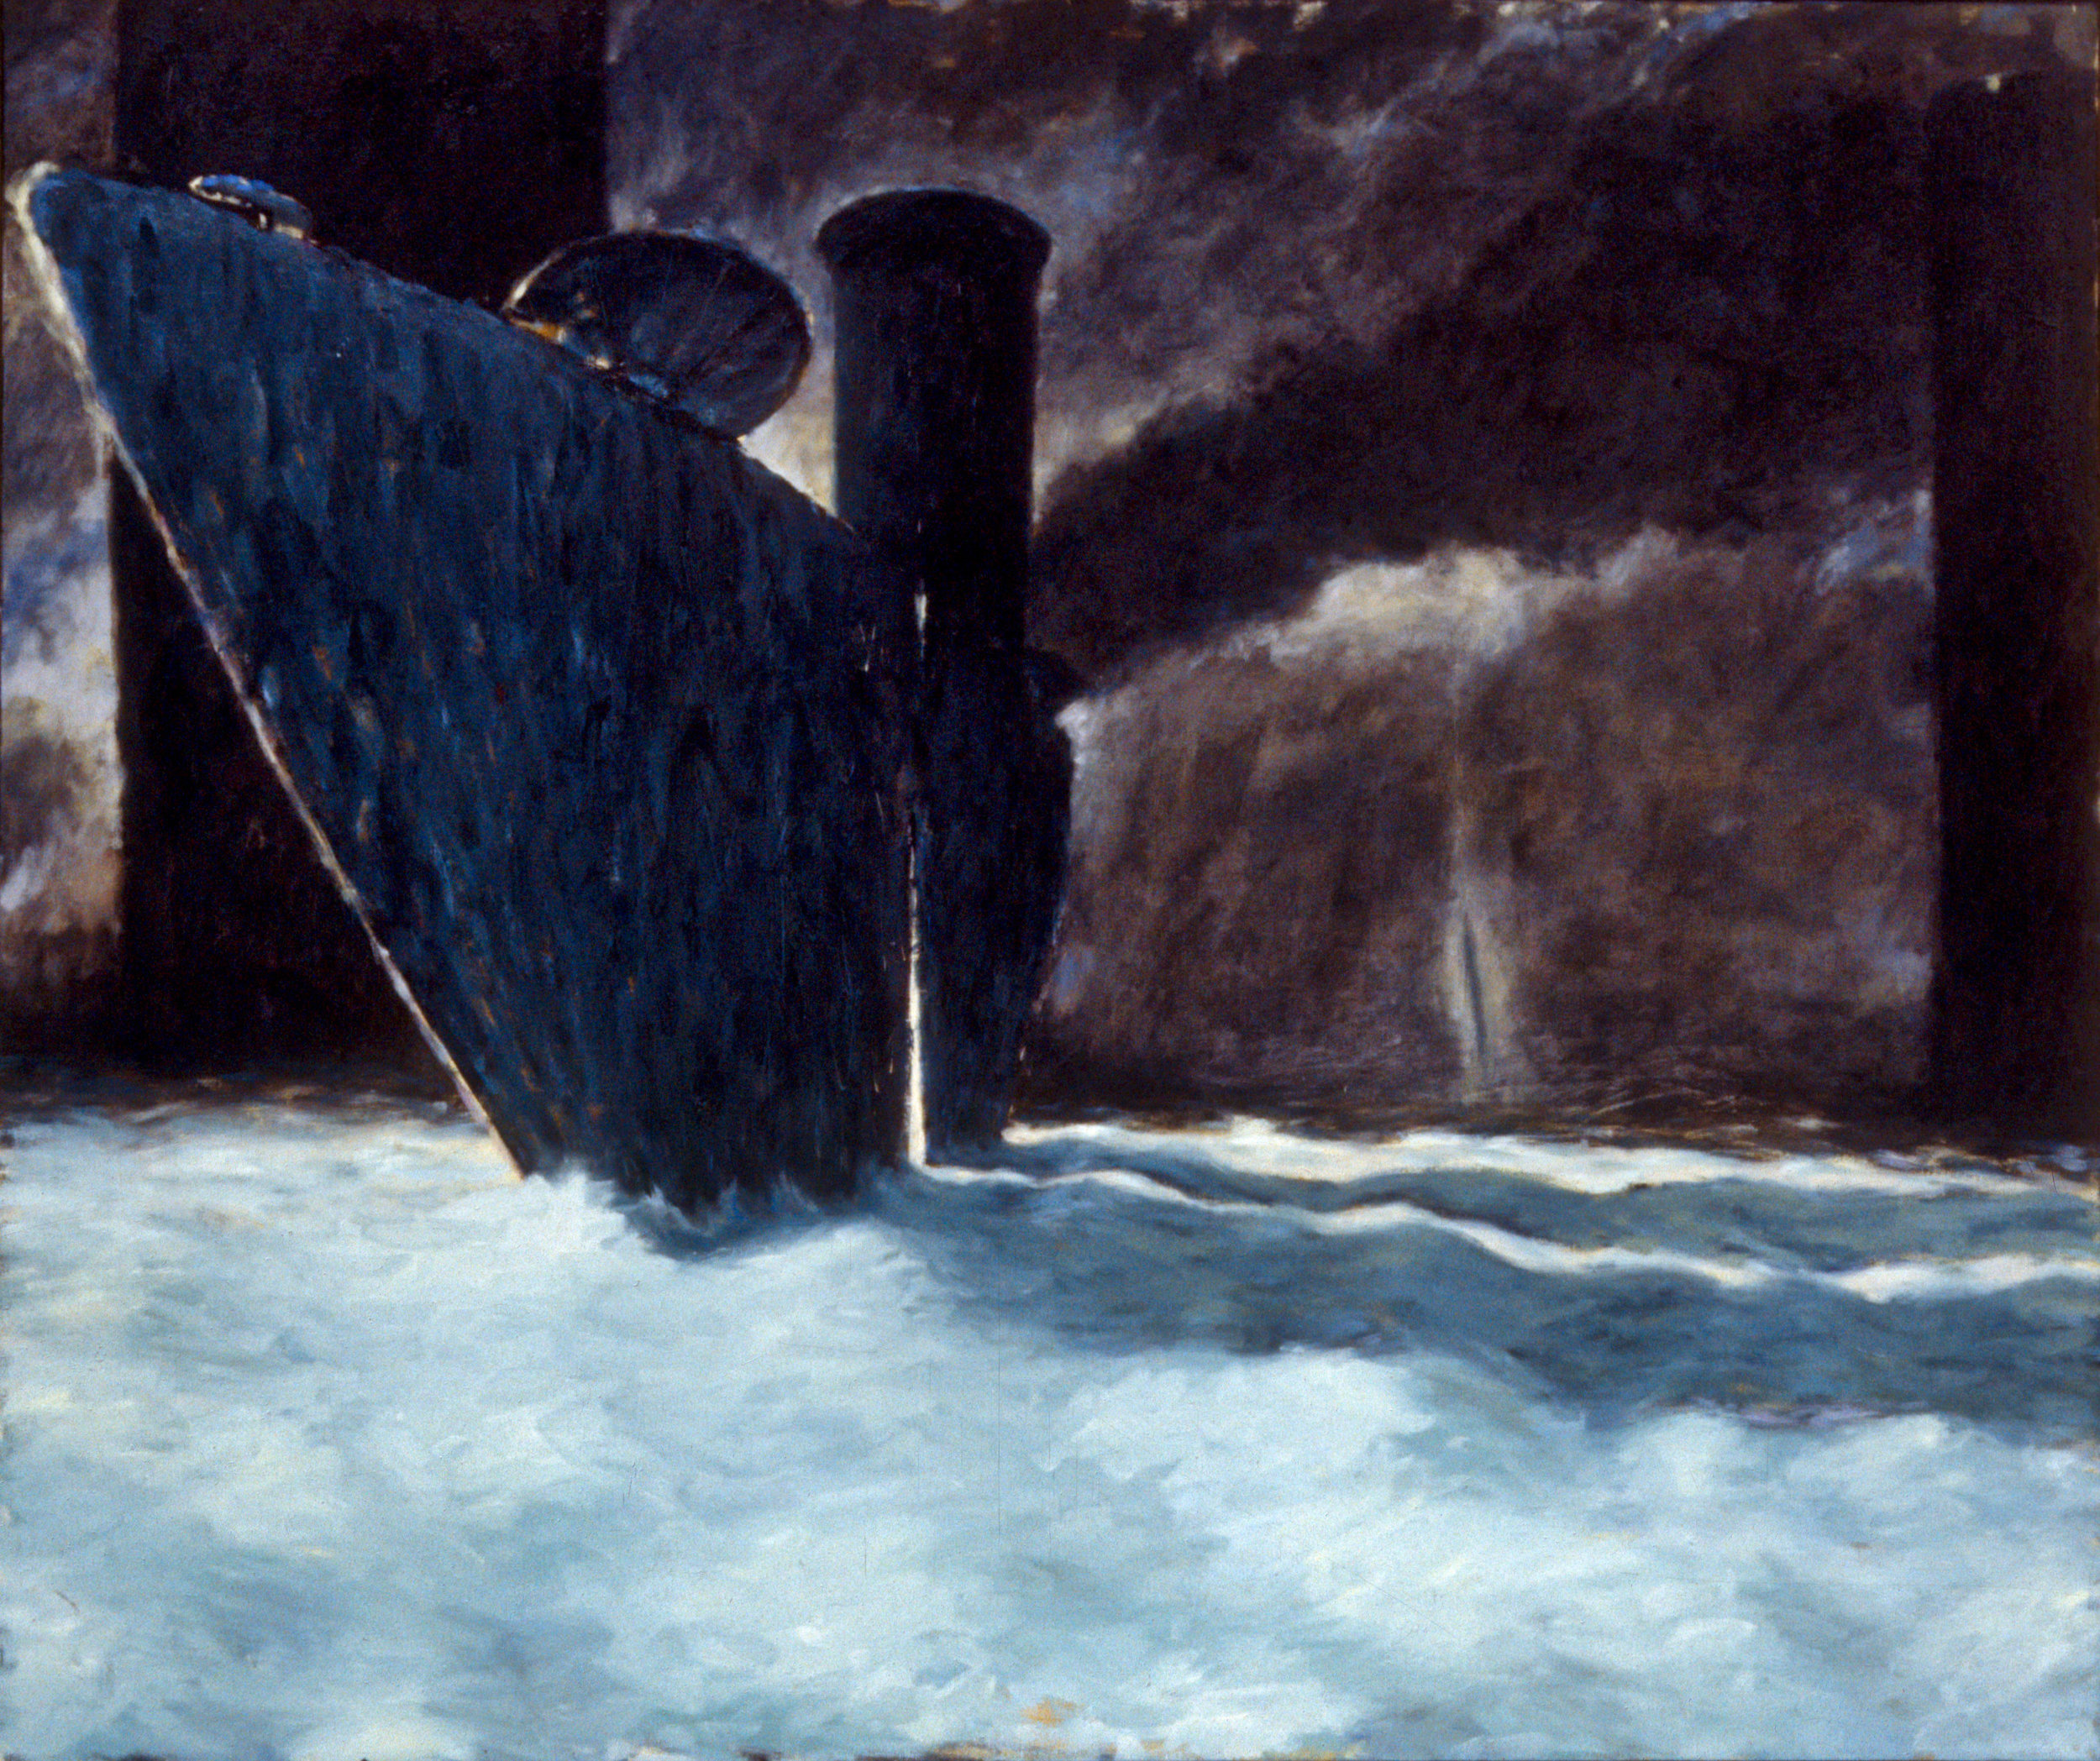 The water spout (diptych)